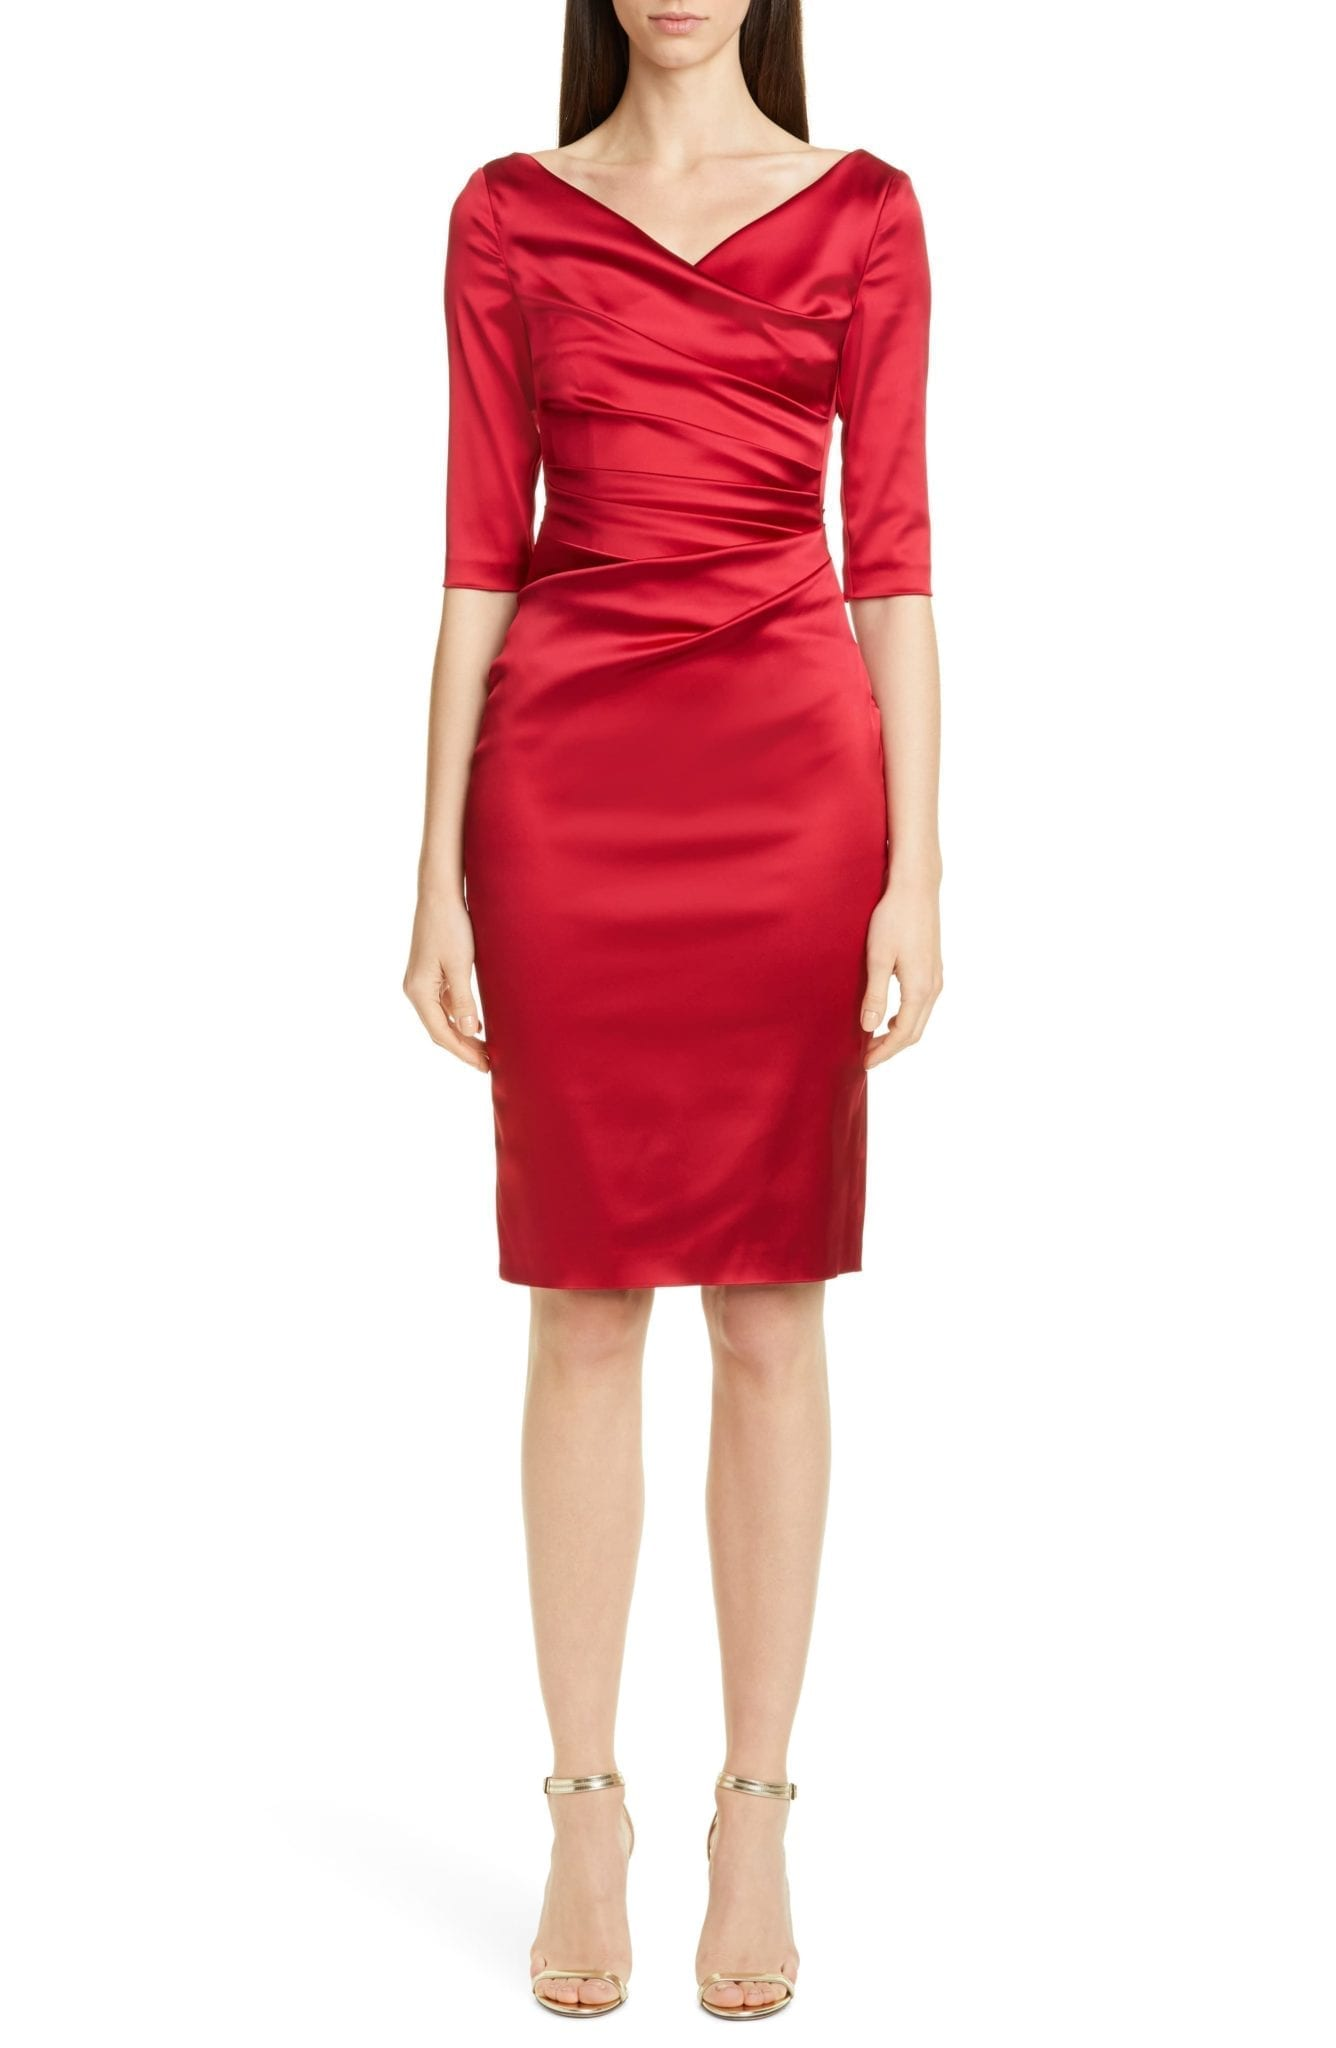 TALBOT RUNHOF Stretch Duchess Satin Sheath Dress